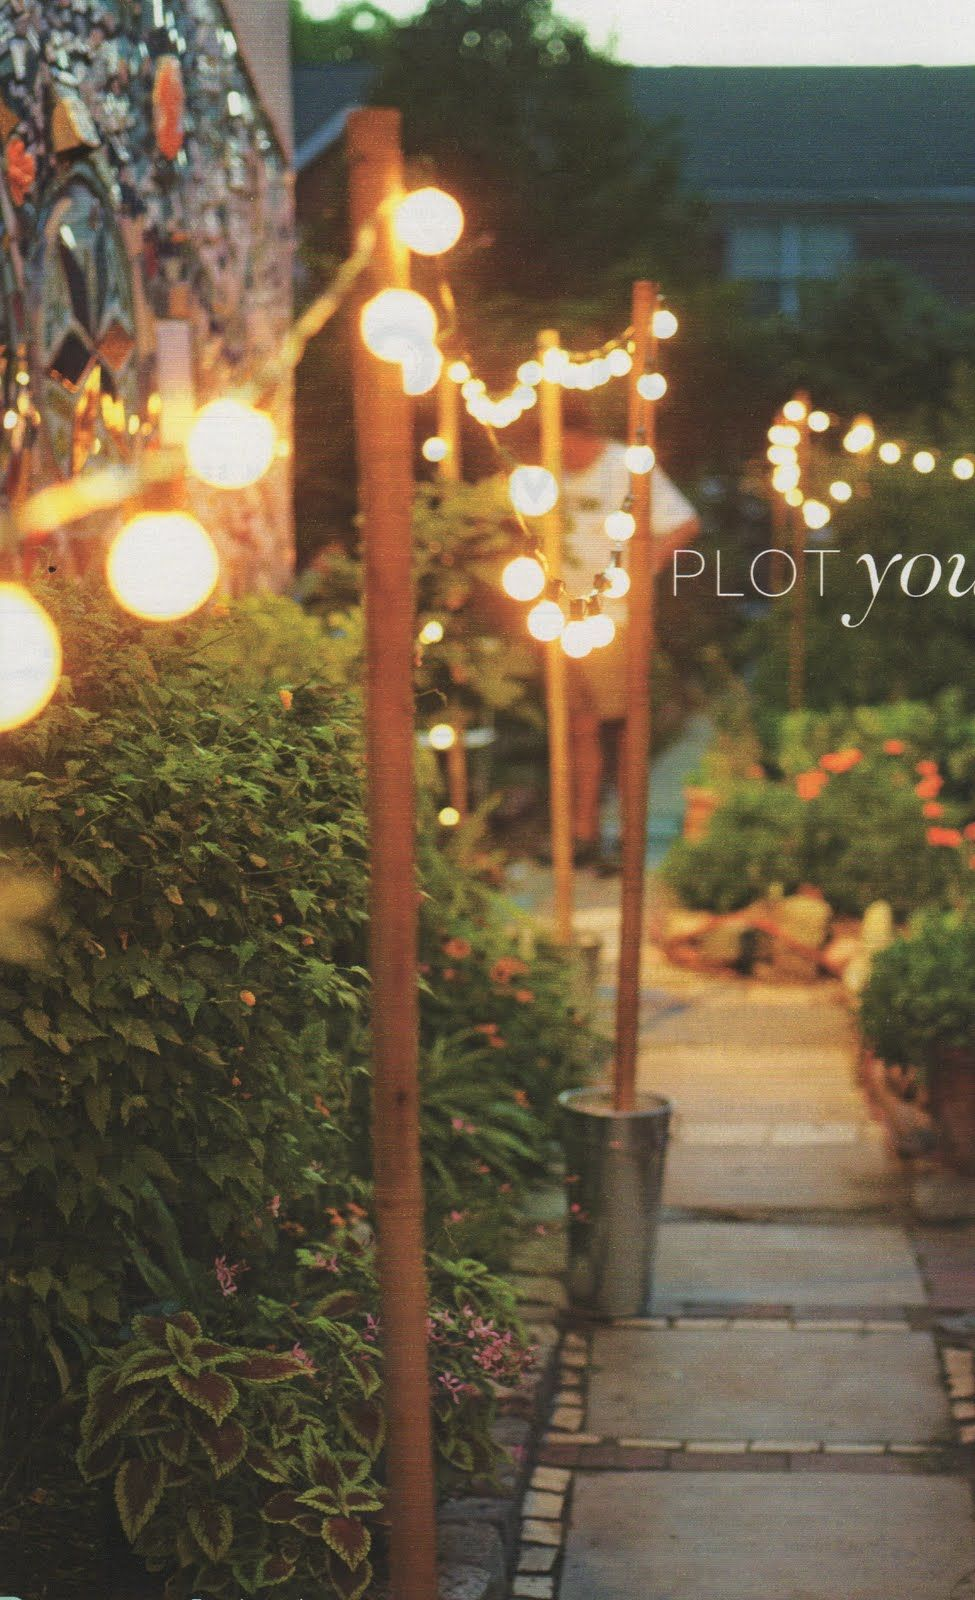 Use sand filled buckets and wooden posts to sring lights around use sand filled buckets and wooden posts to sring lights around globelights bistrolights mozeypictures Image collections